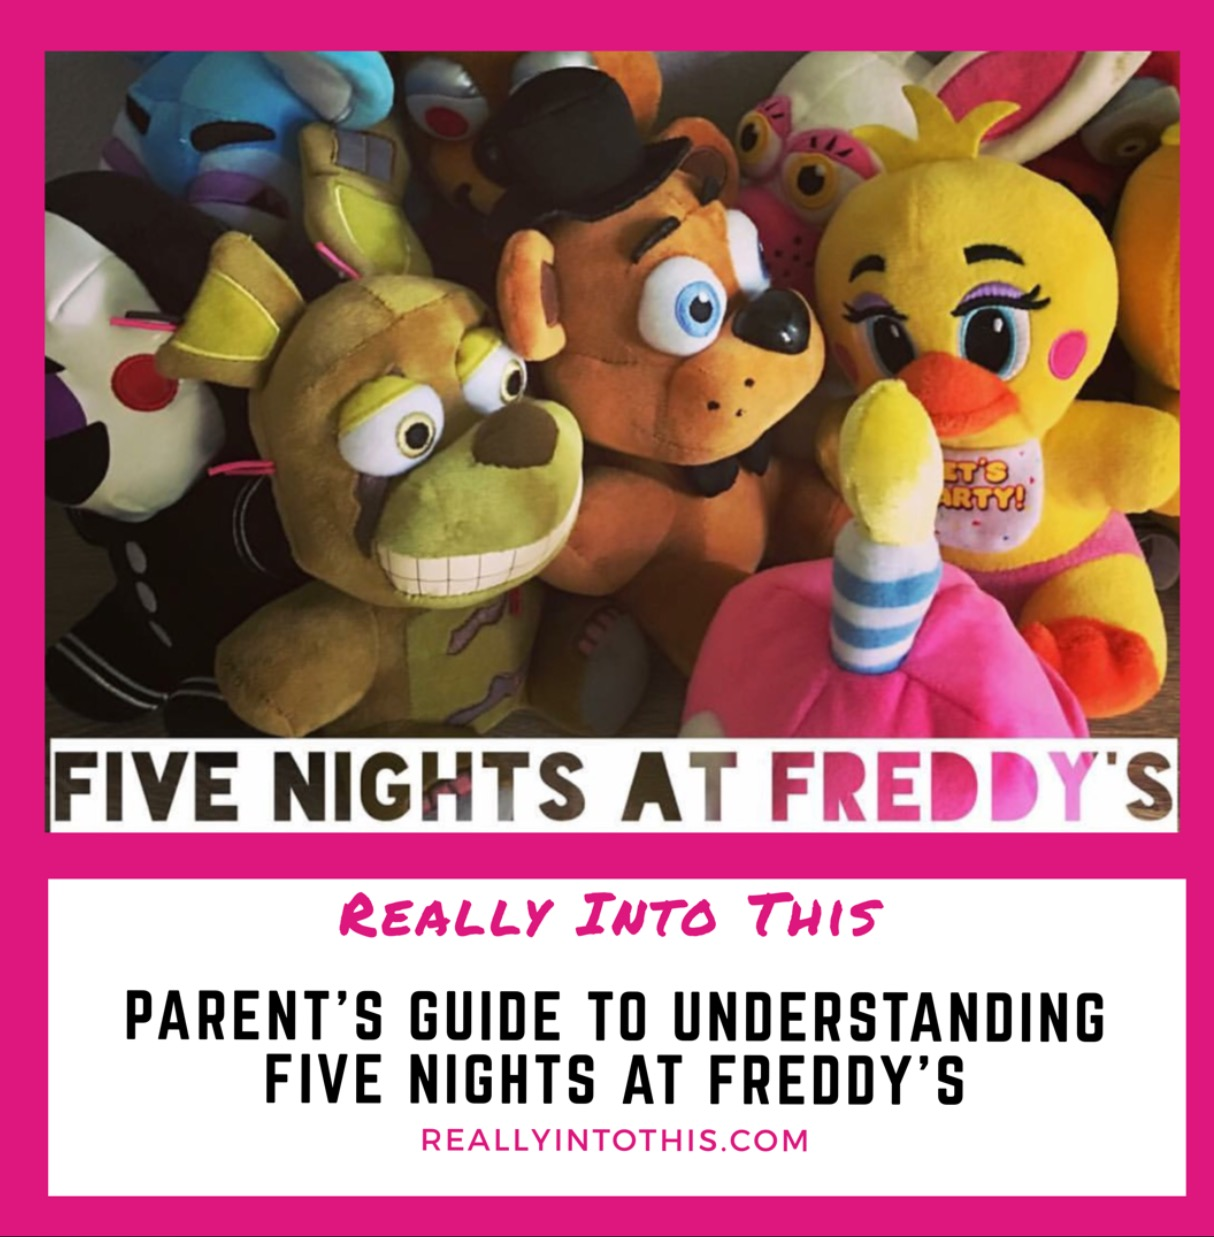 Parent's Guide to Understanding Five Nights at Freddy's